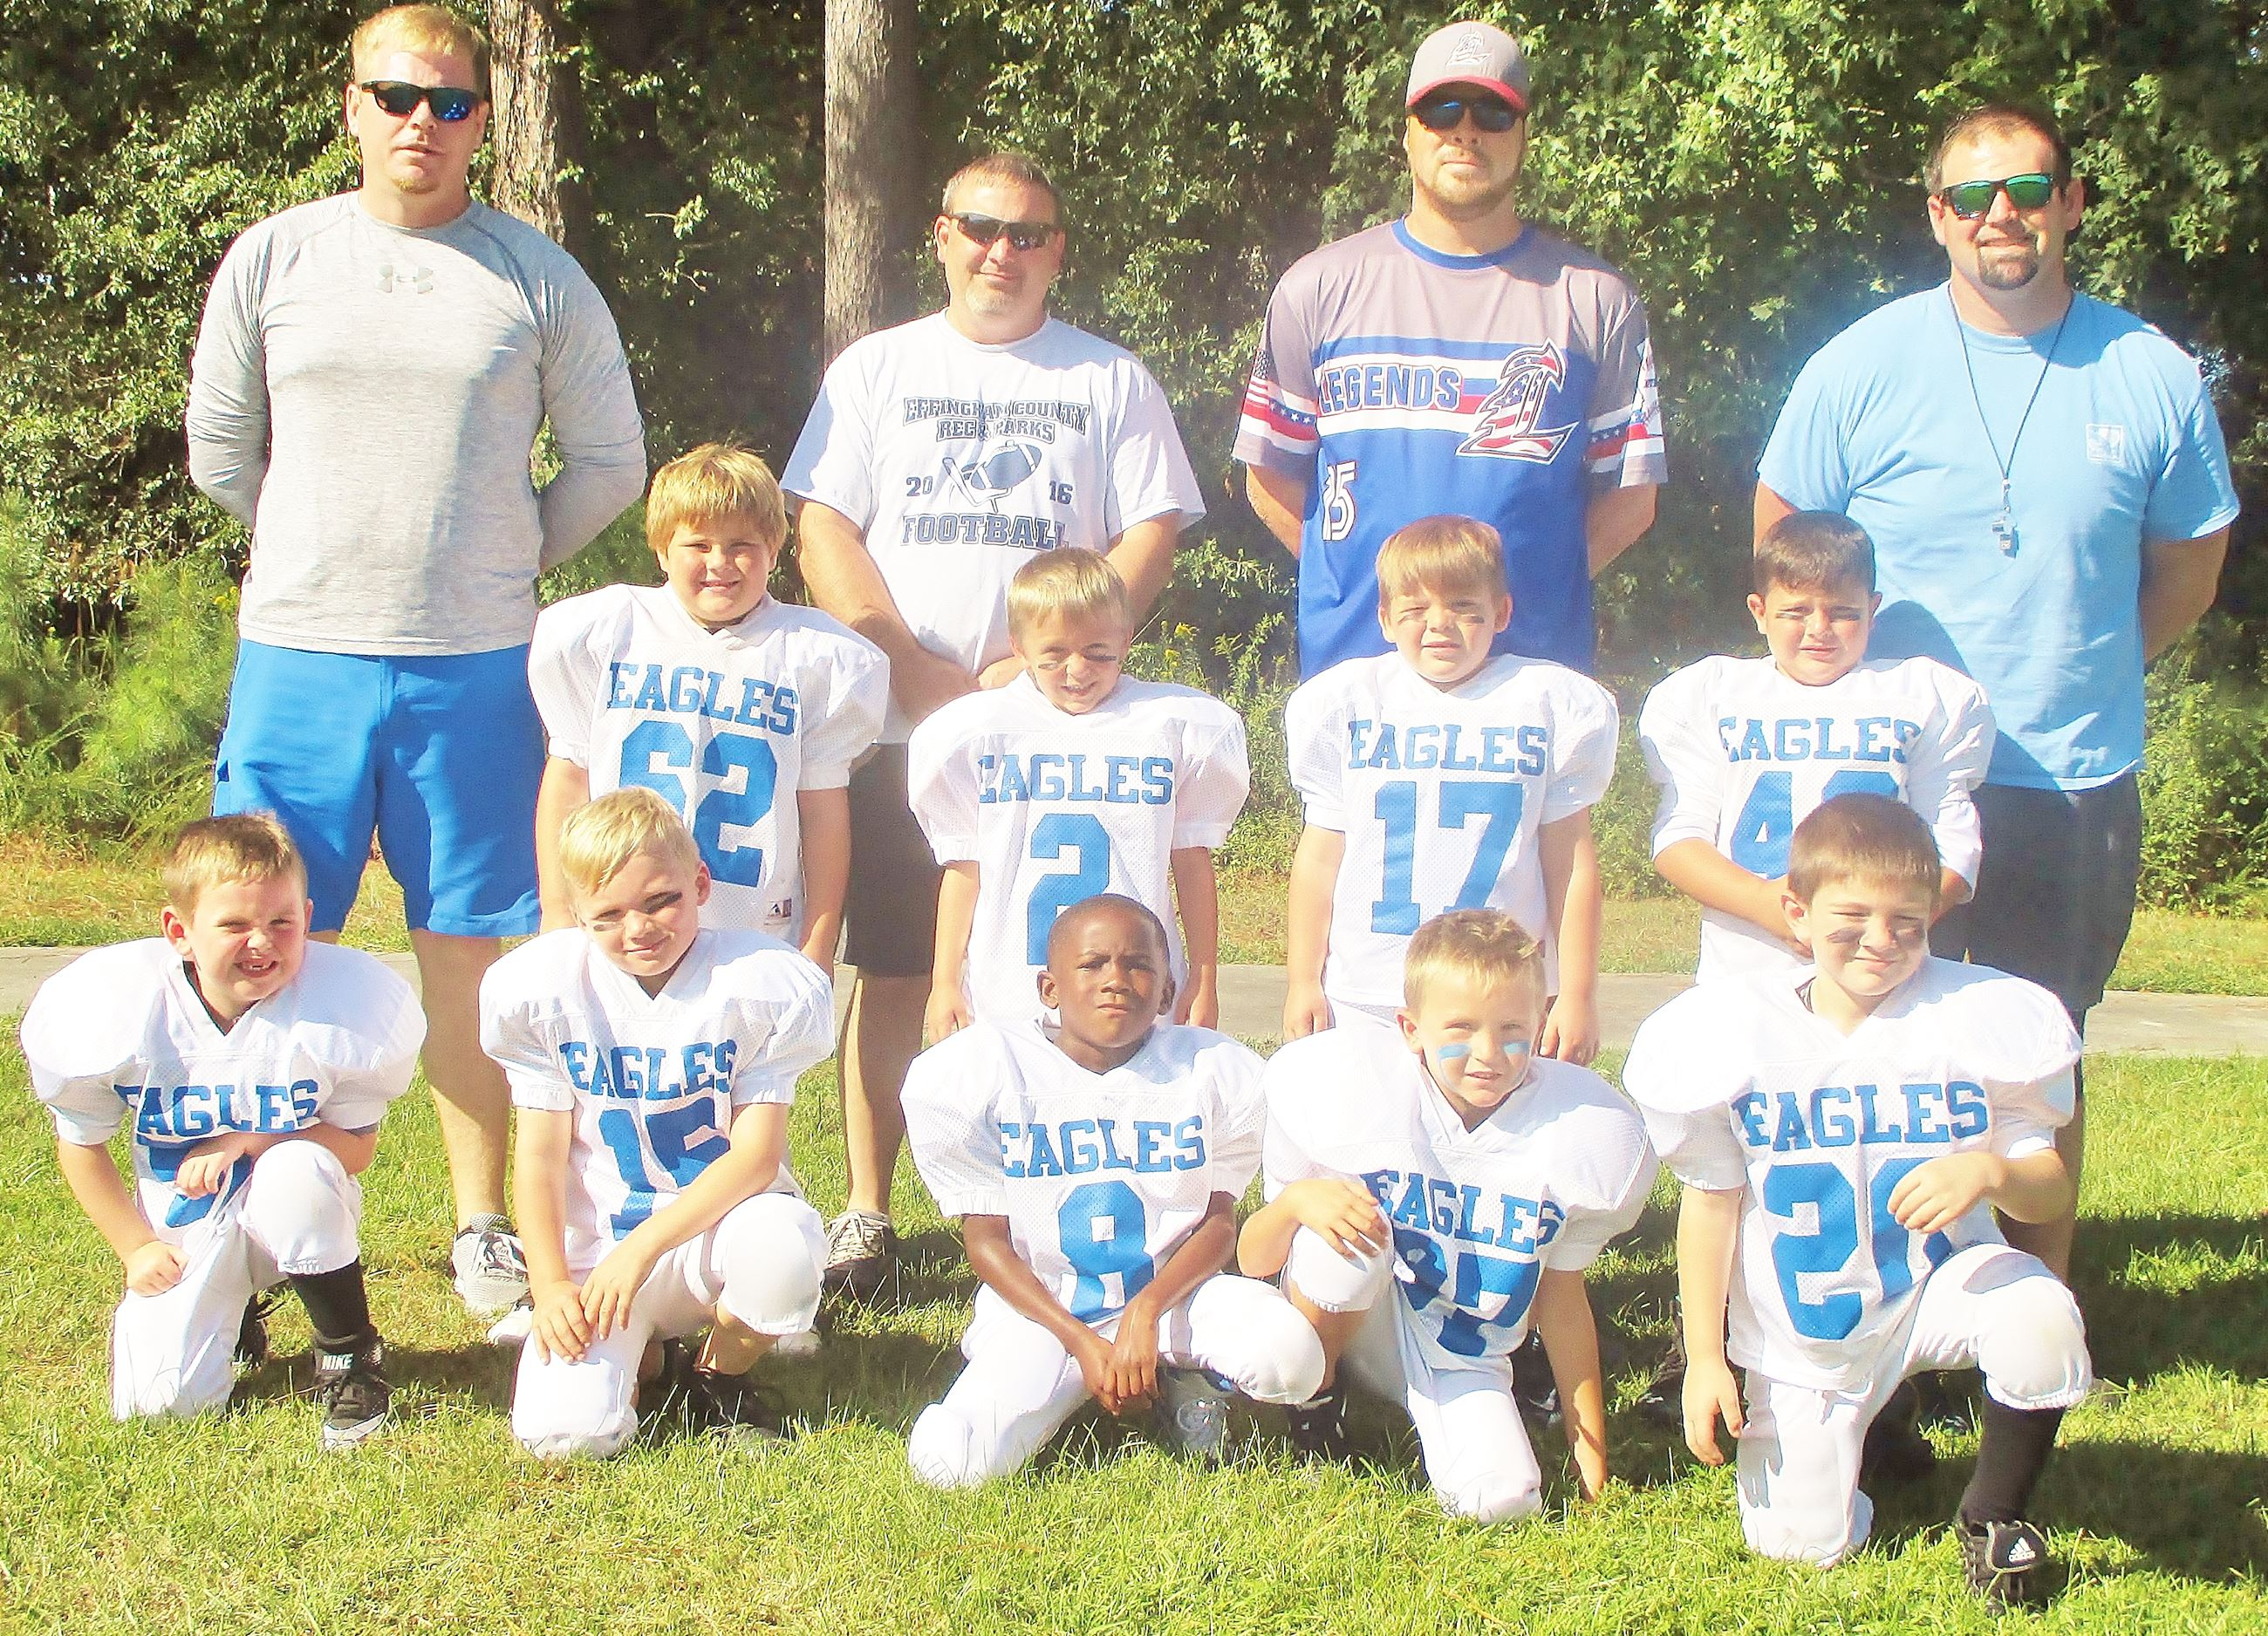 6U FB MYERS EAGLES